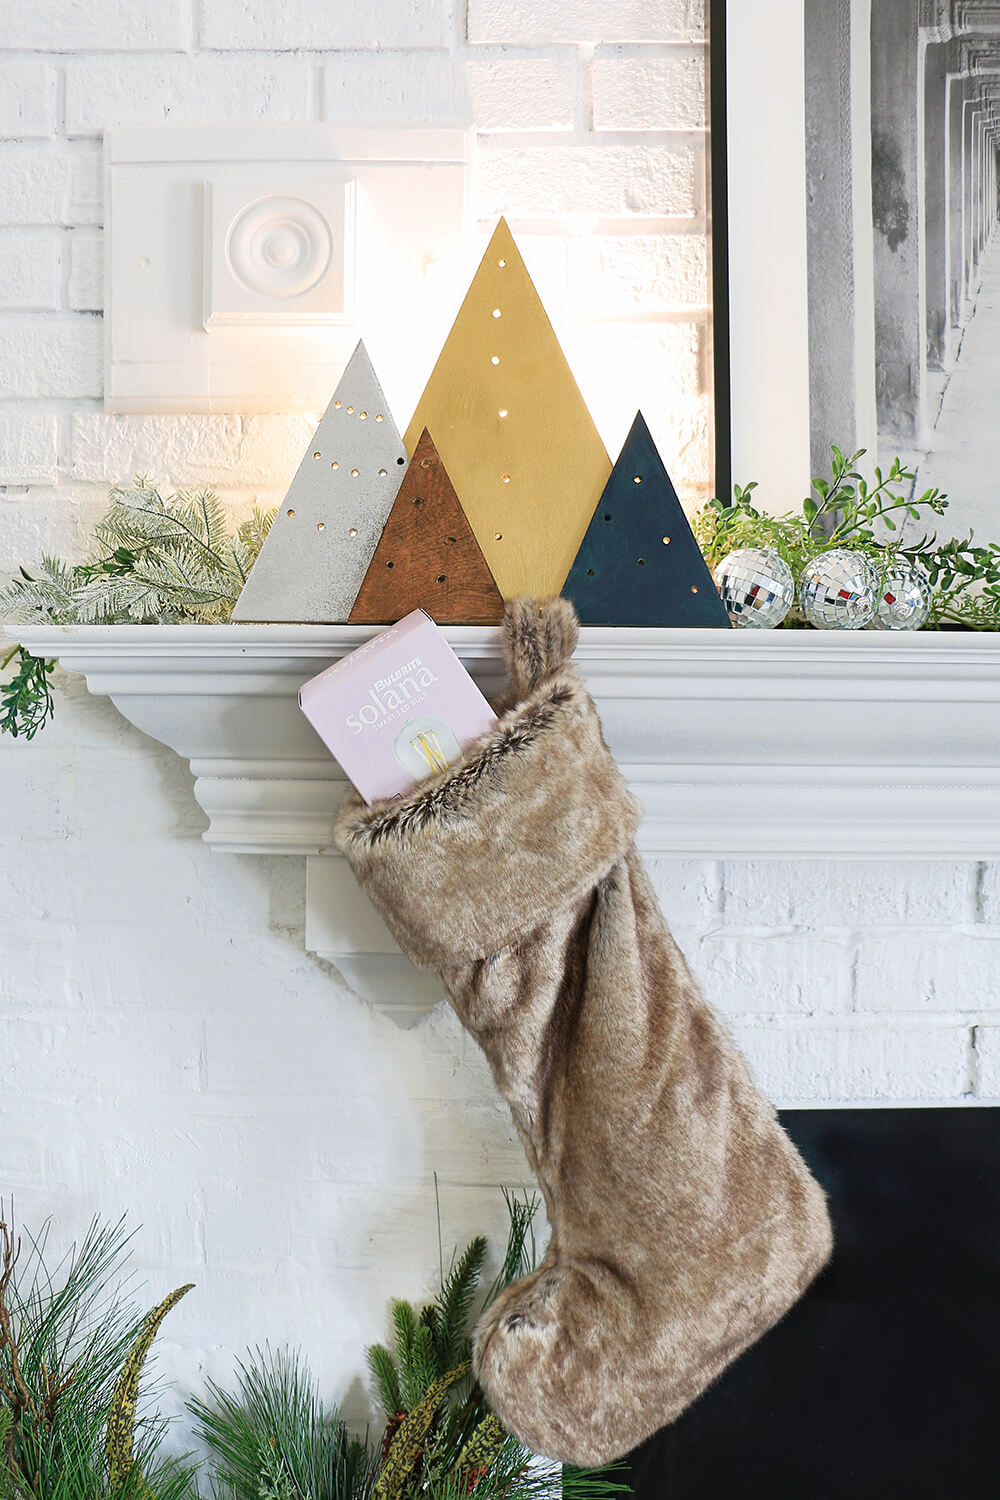 Holiday light with stocking on mantel